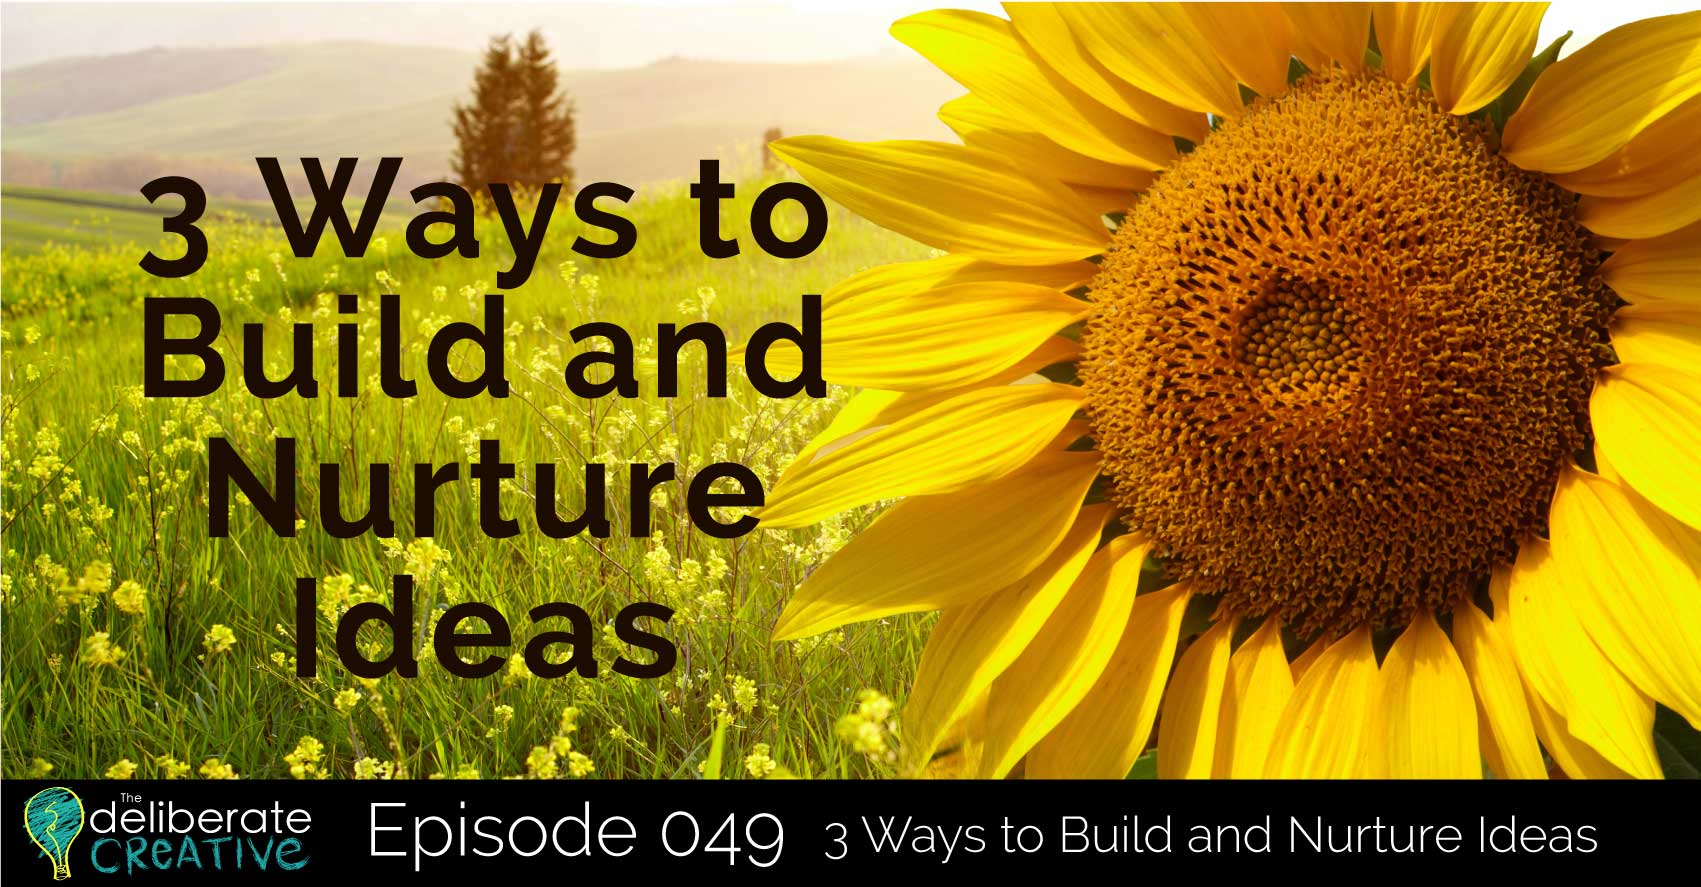 The Deliberate Creative Episode 49: 3 Ways to Build and Nurture Ideas